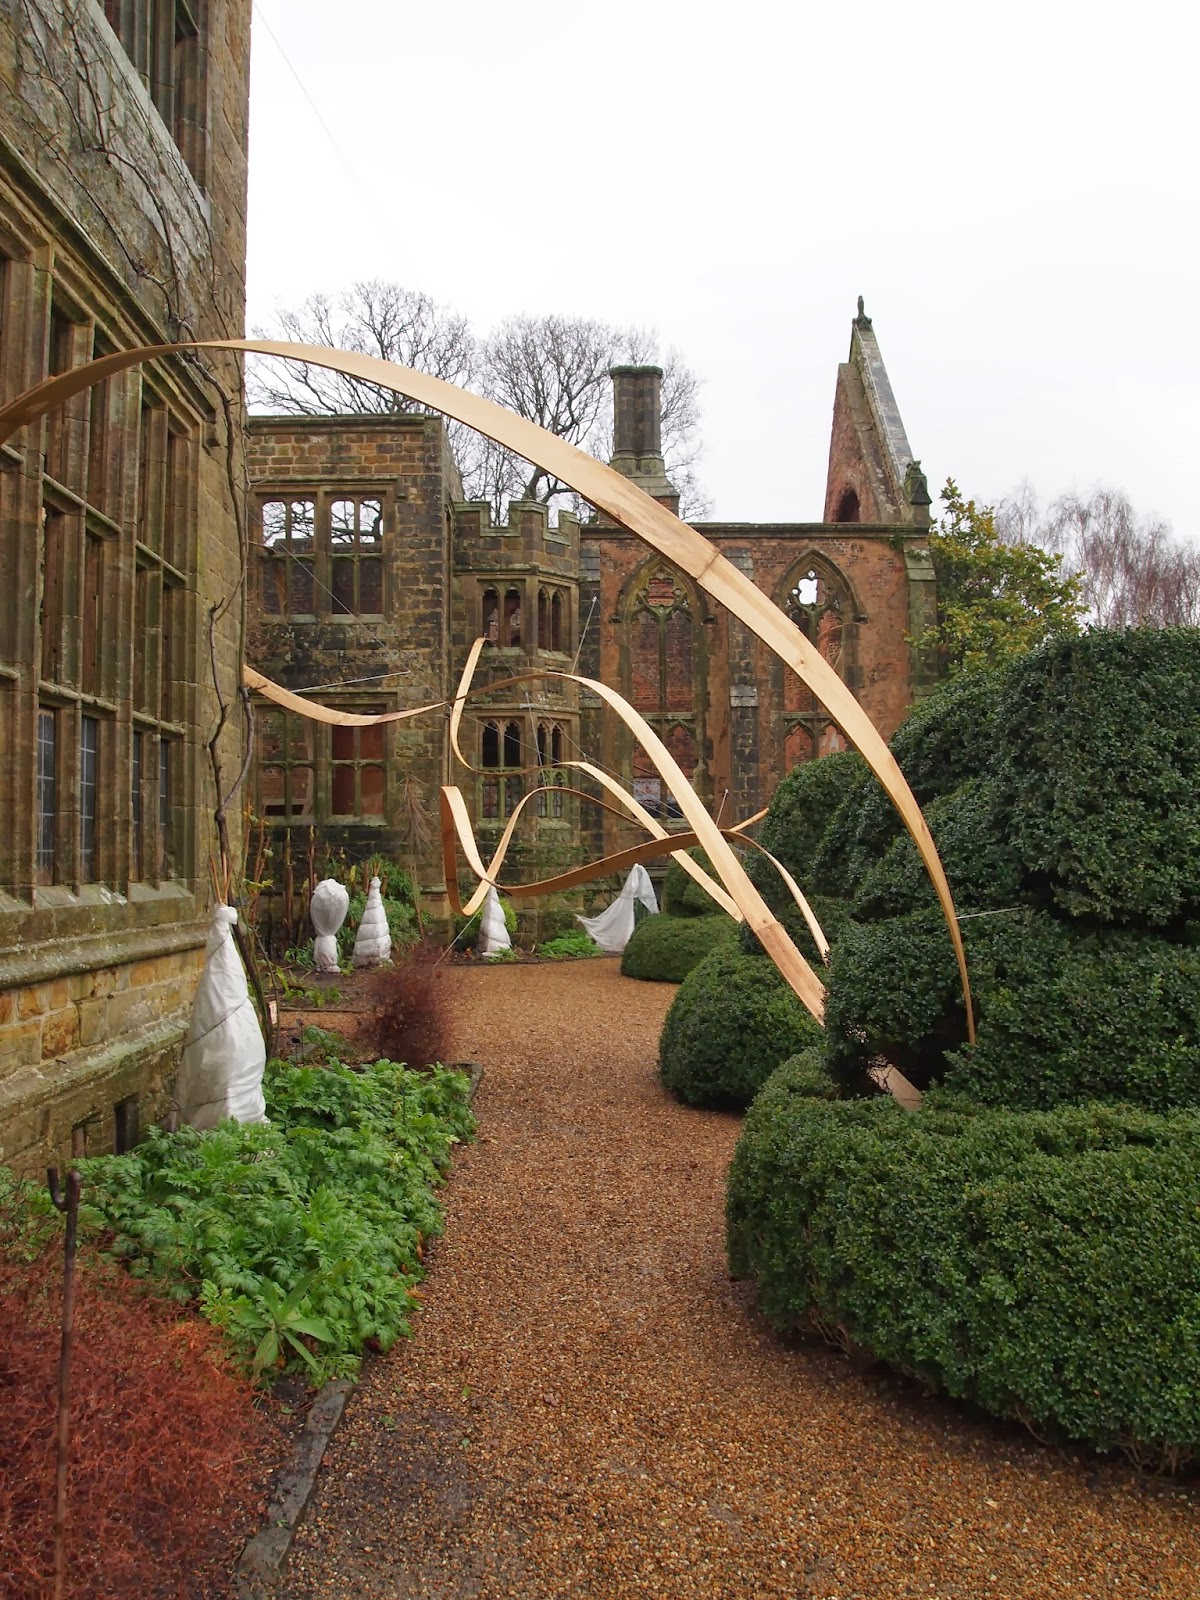 Sculpture in the garden and landscape, review by garden designer Oliver Borrow